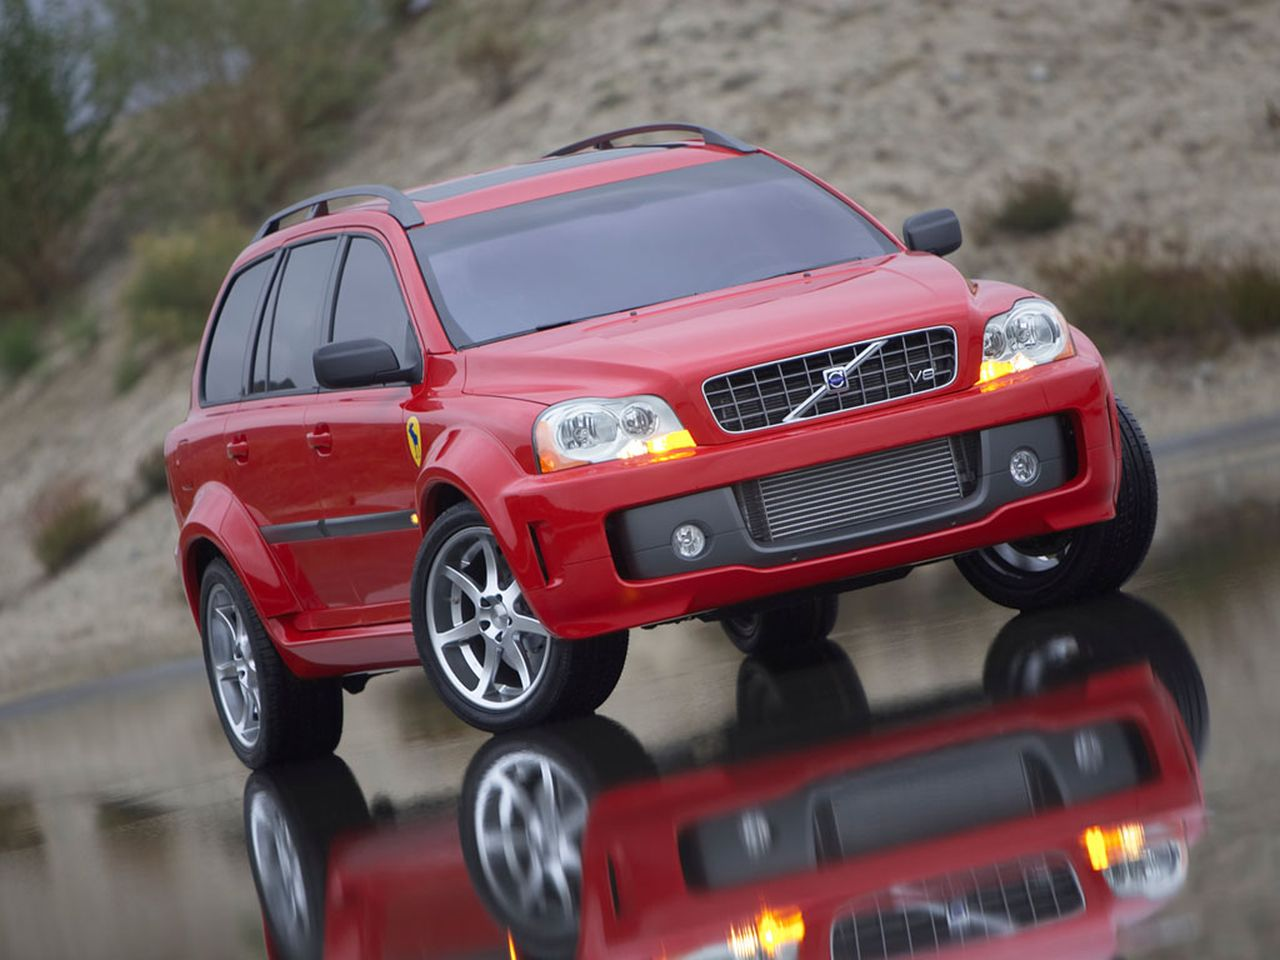 Volvo XC90 2004 PUV Concept - I've got the power !! 32